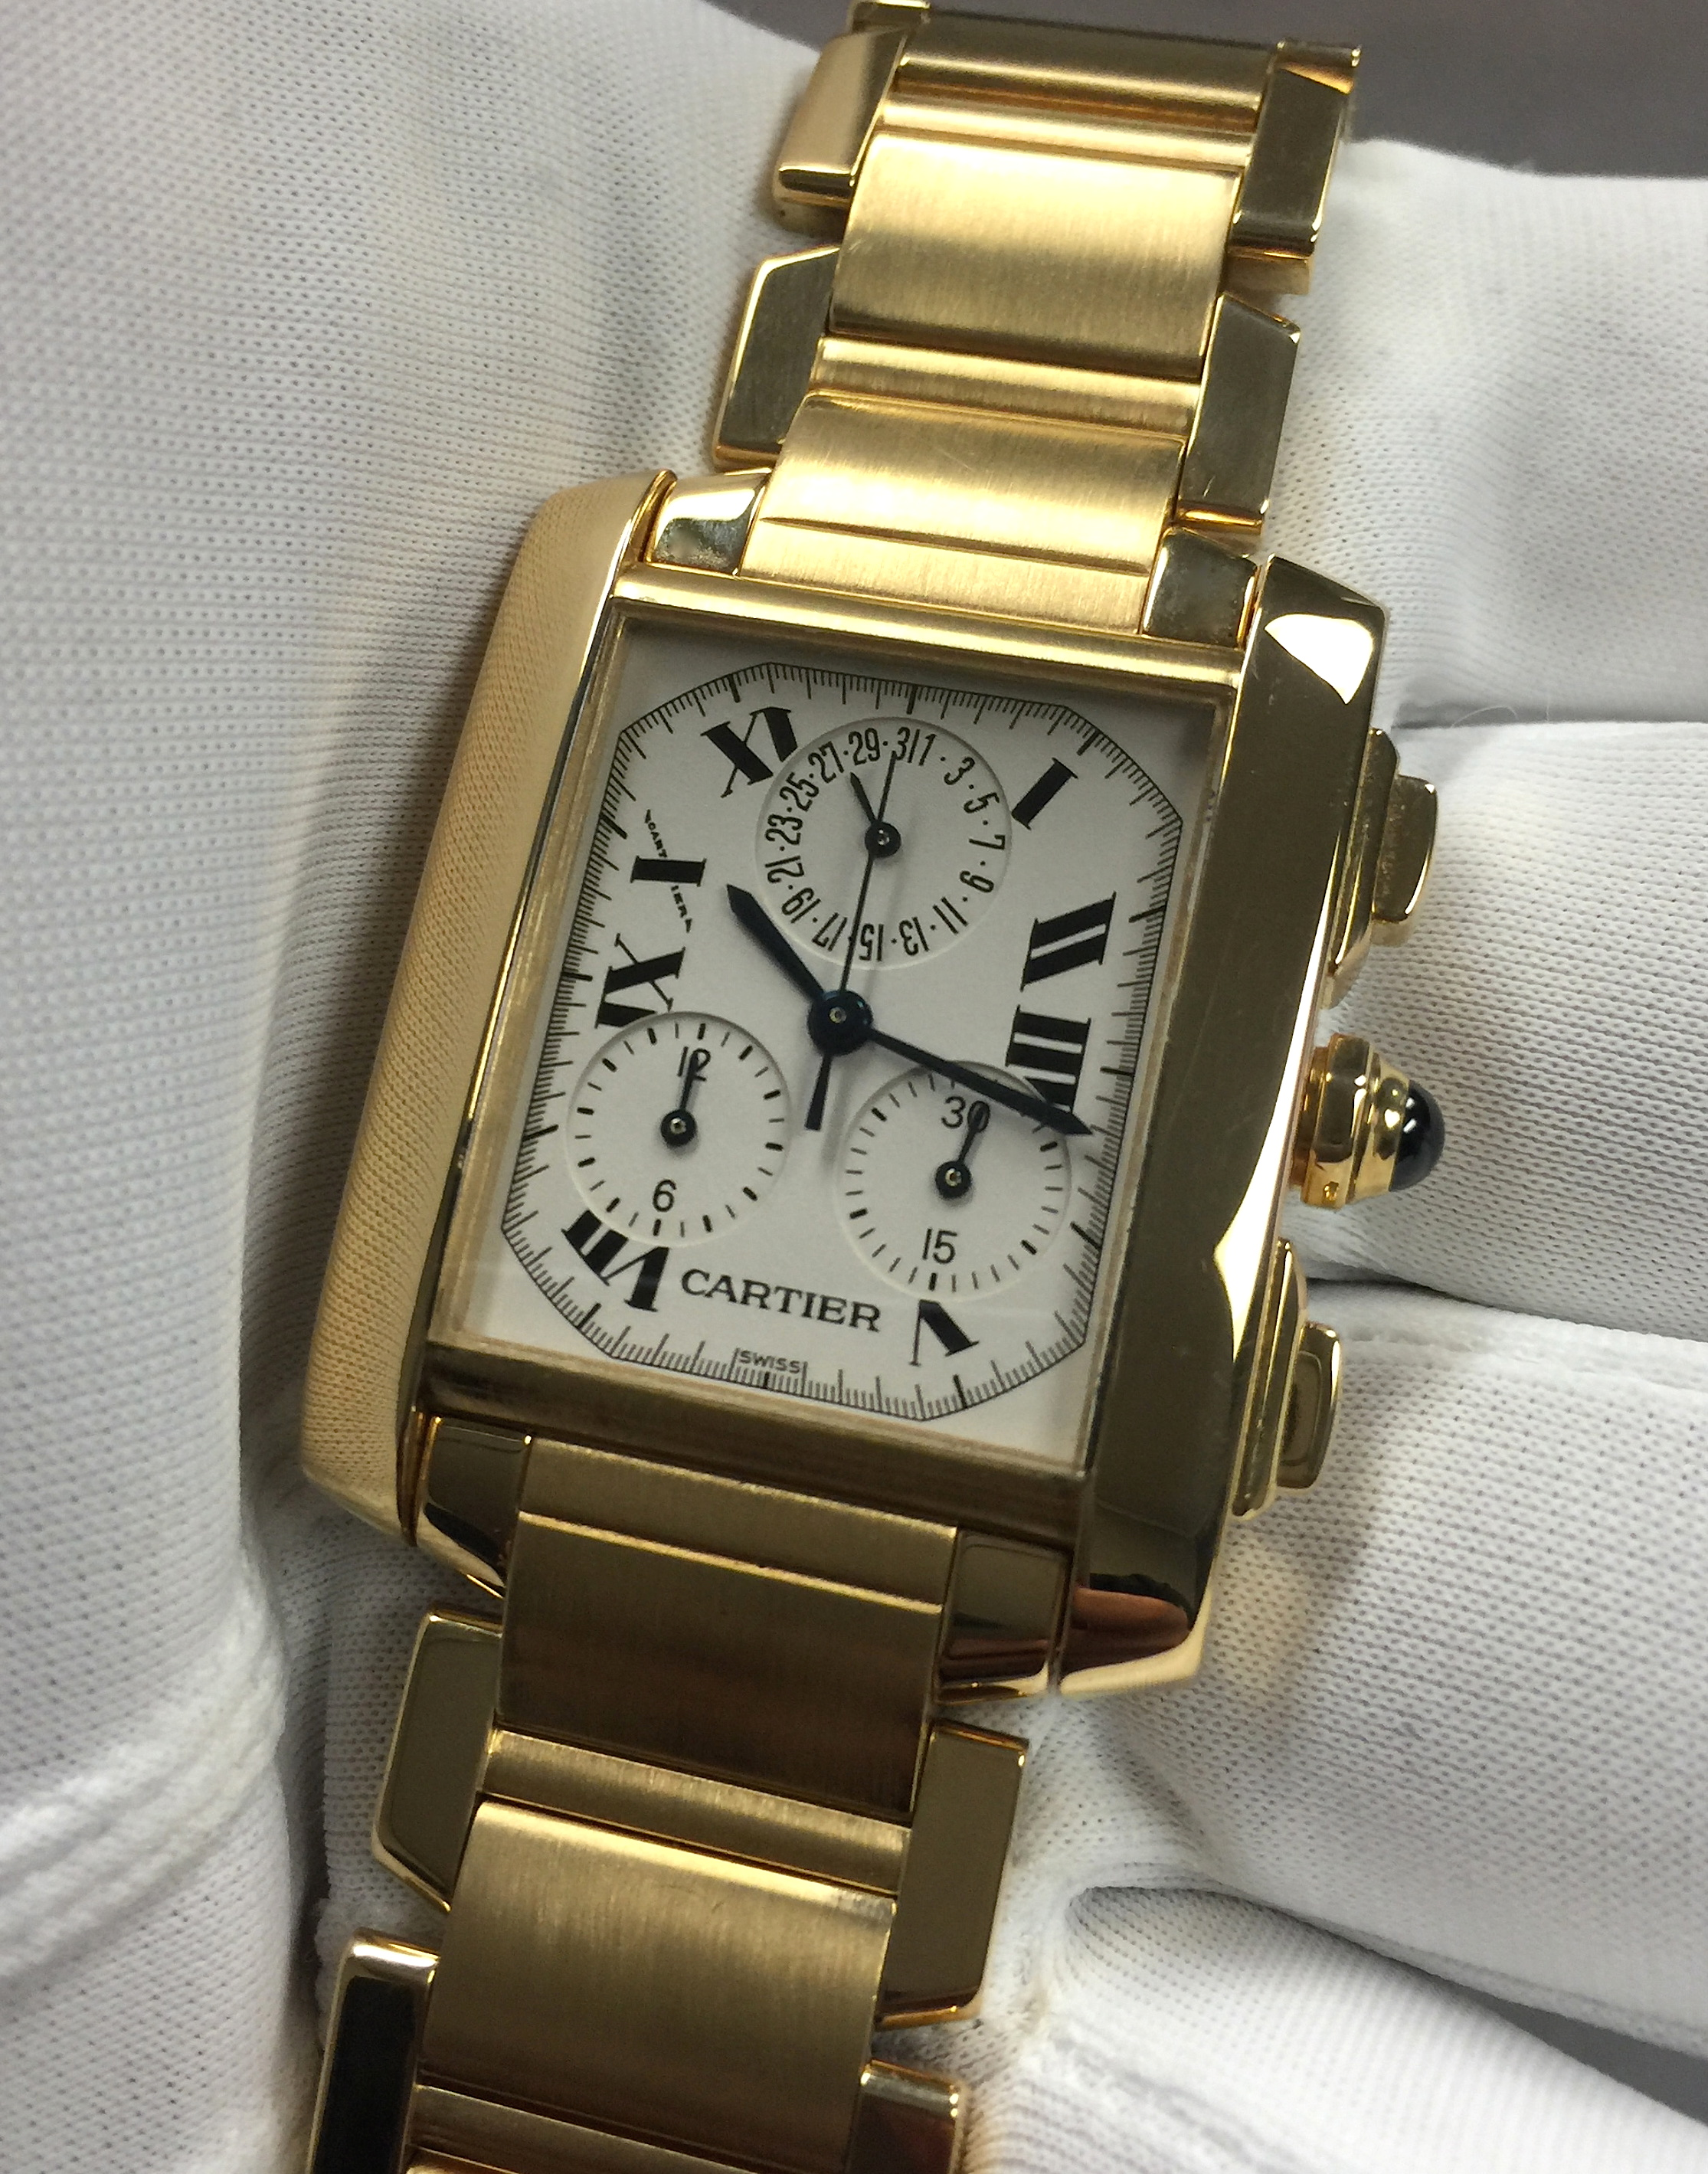 Cartier Tank Francaise Chronograph 1830 18k Yellow Gold